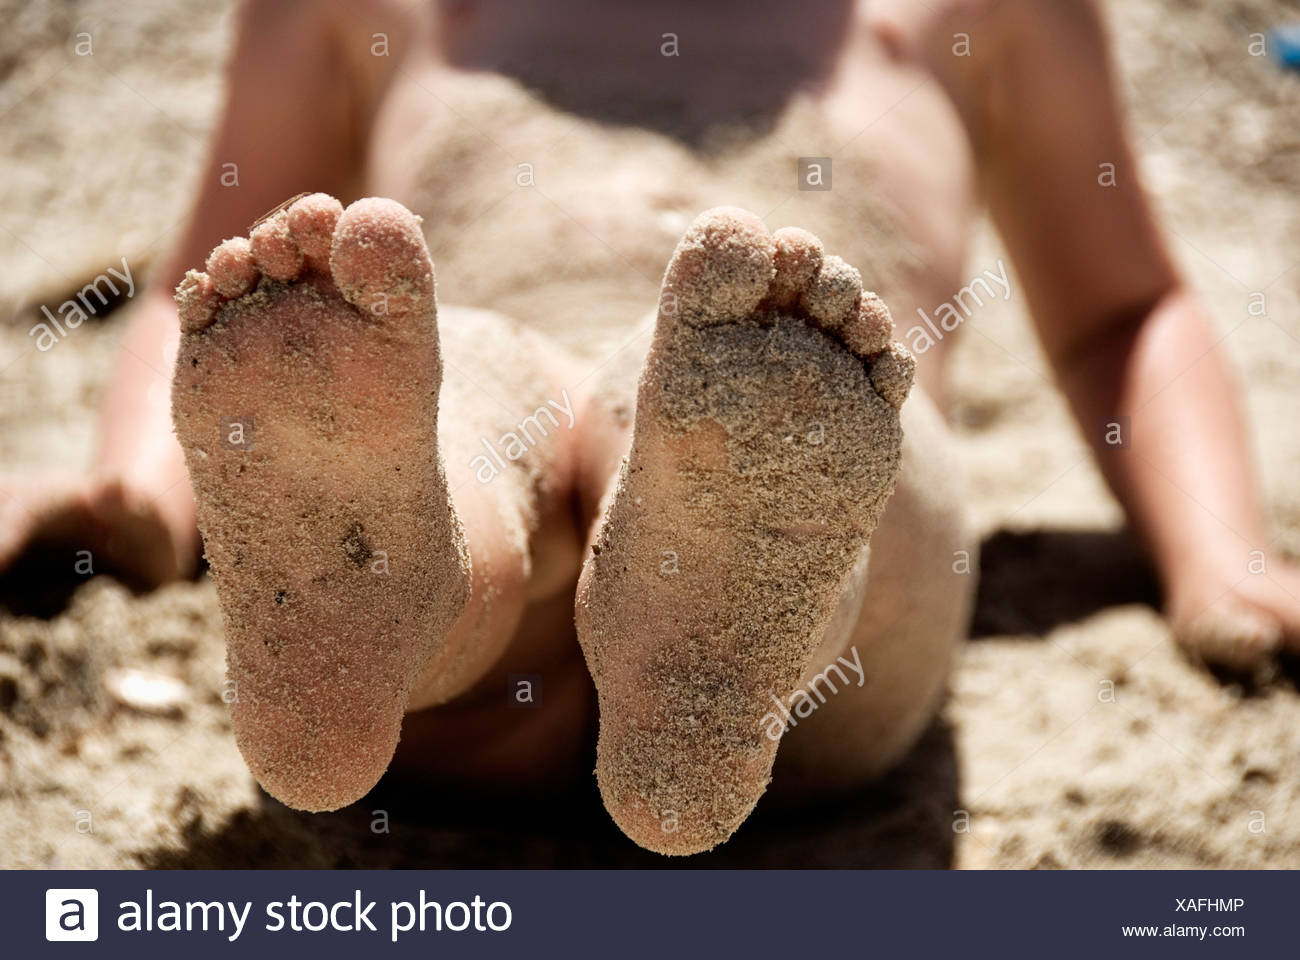 Child with sand on feet - Stock Image